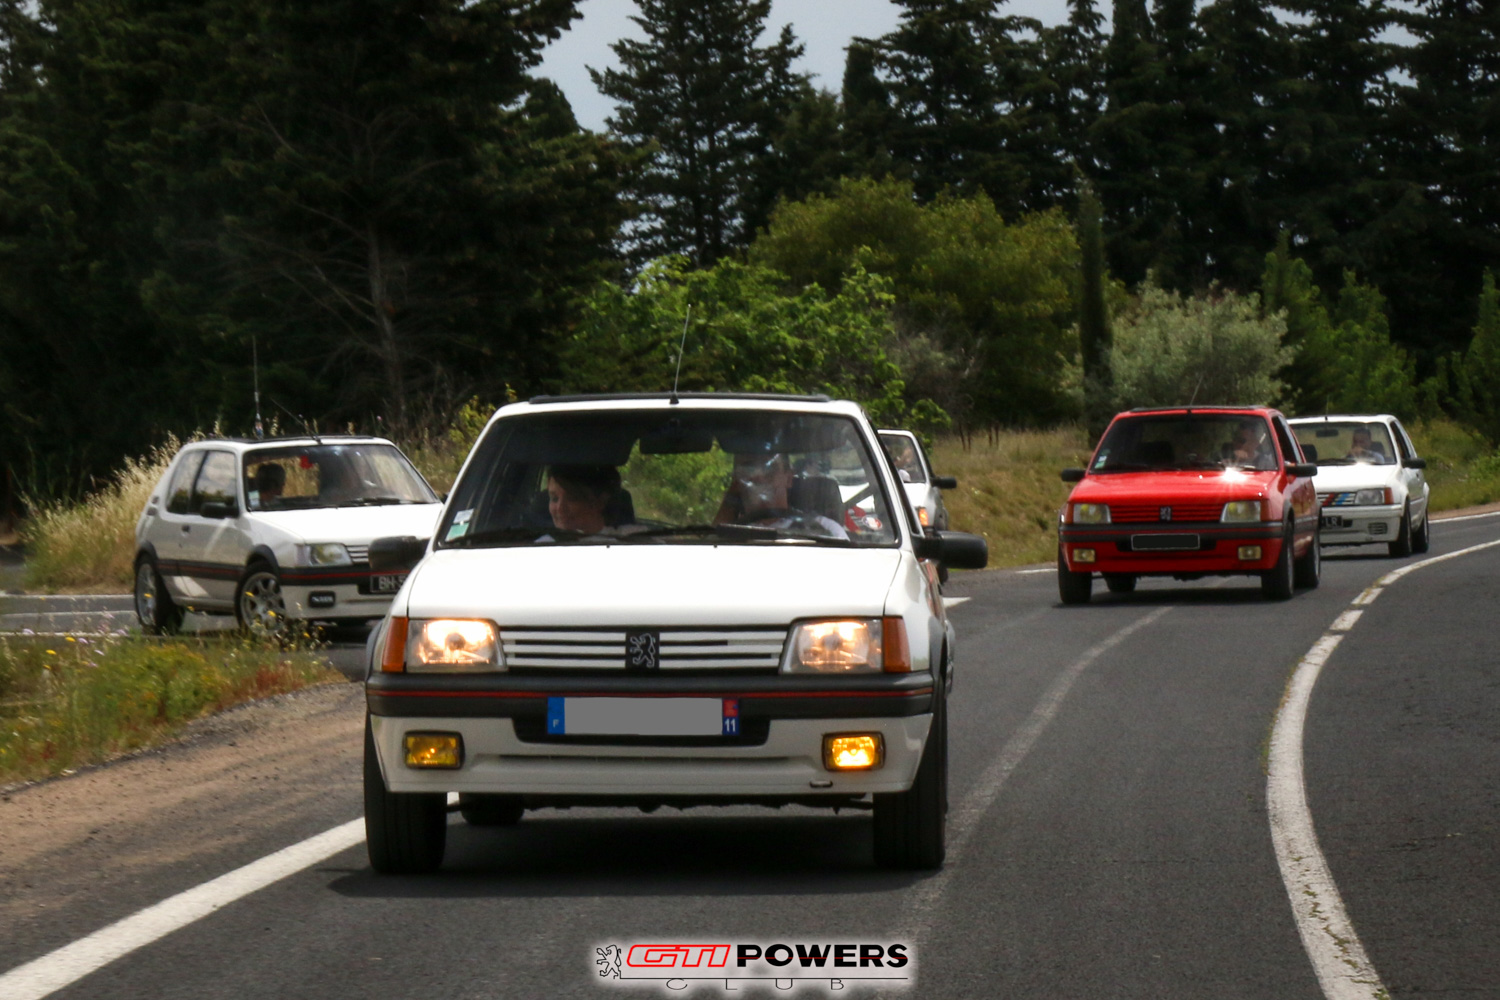 [GTIPOWERS DAYS] Nationale #4 - 8-9-10 Juin 2019 - Beziers - Page 8 Gtipow80